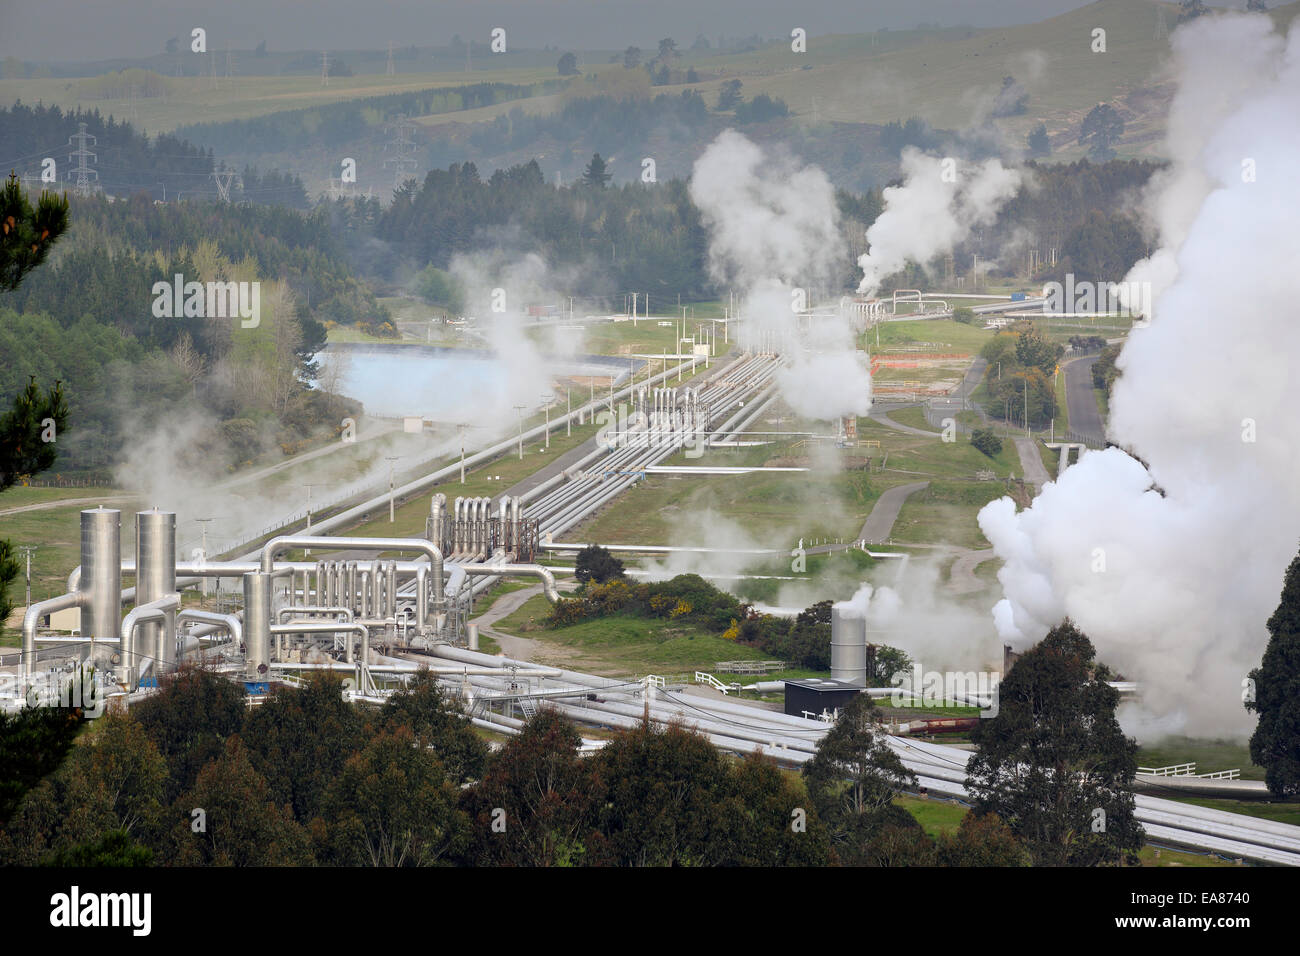 Wairakei Power Station, a geothermal (wet steam) power station in Taupo, New Zealand - Stock Image